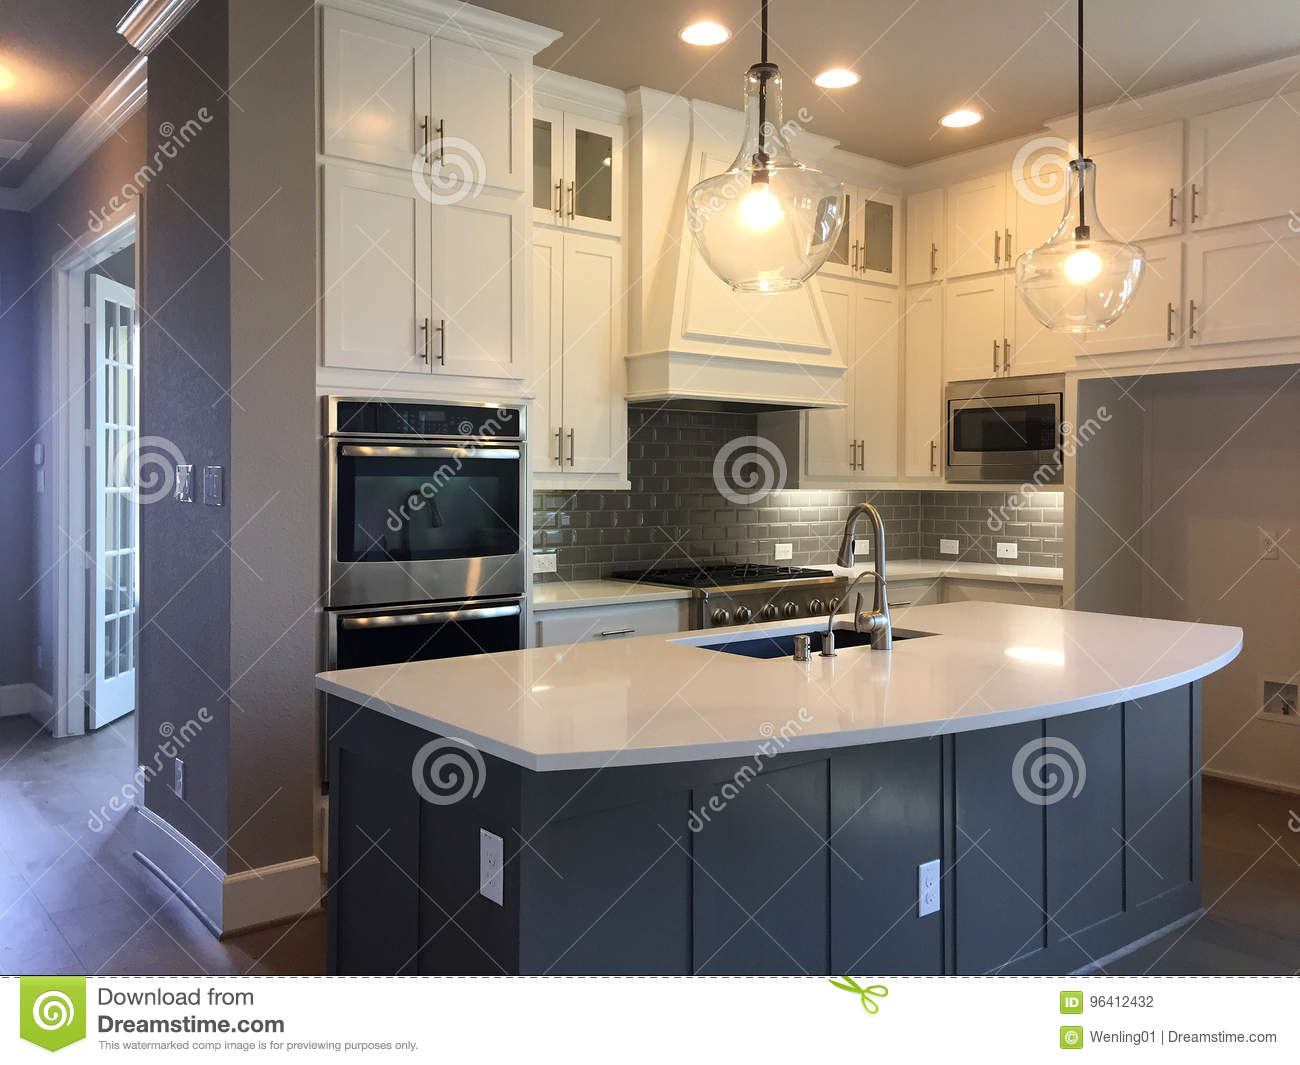 Kitchen With Island Counter Design In A New House Stock Photo